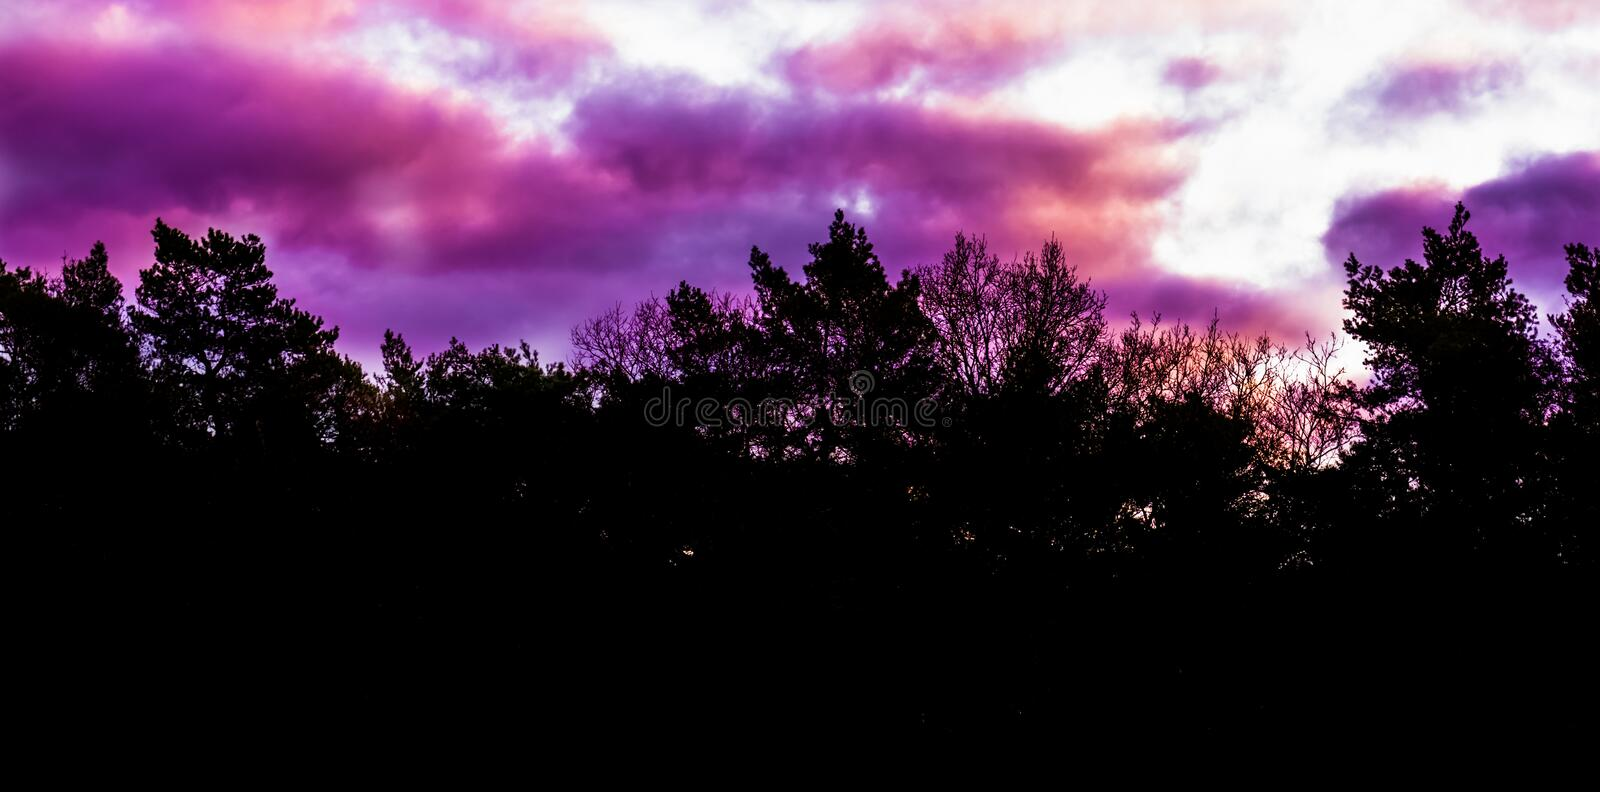 Rare winter weather phenomenon in the sky, pink and purple polar stratospheric clouds, forest landscape background stock image